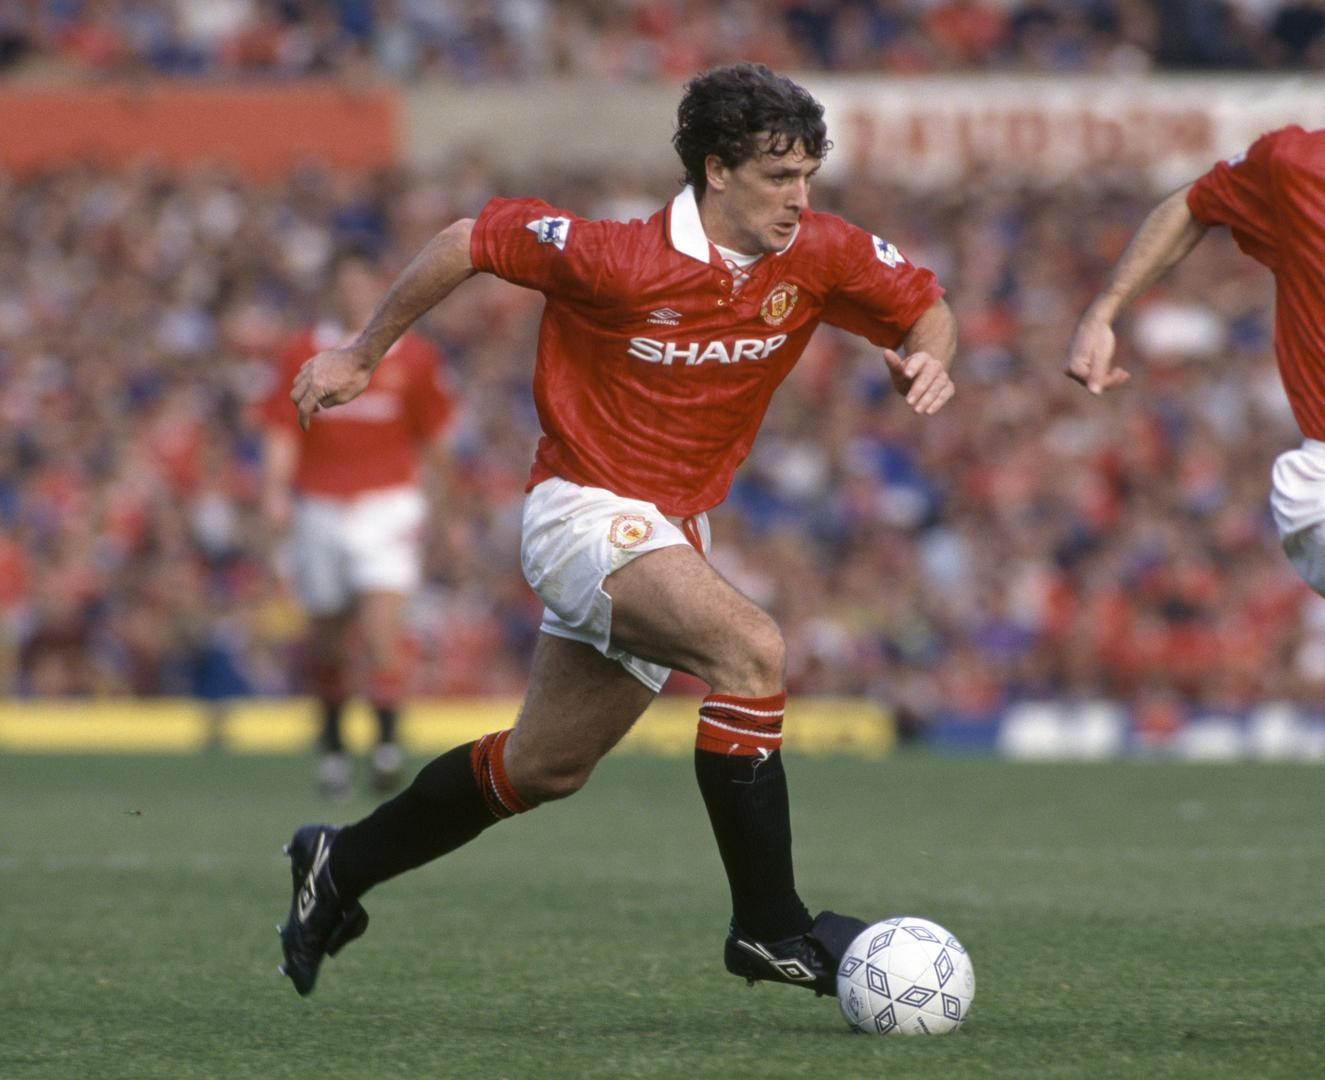 Mark Hughes playing for Manchester United.